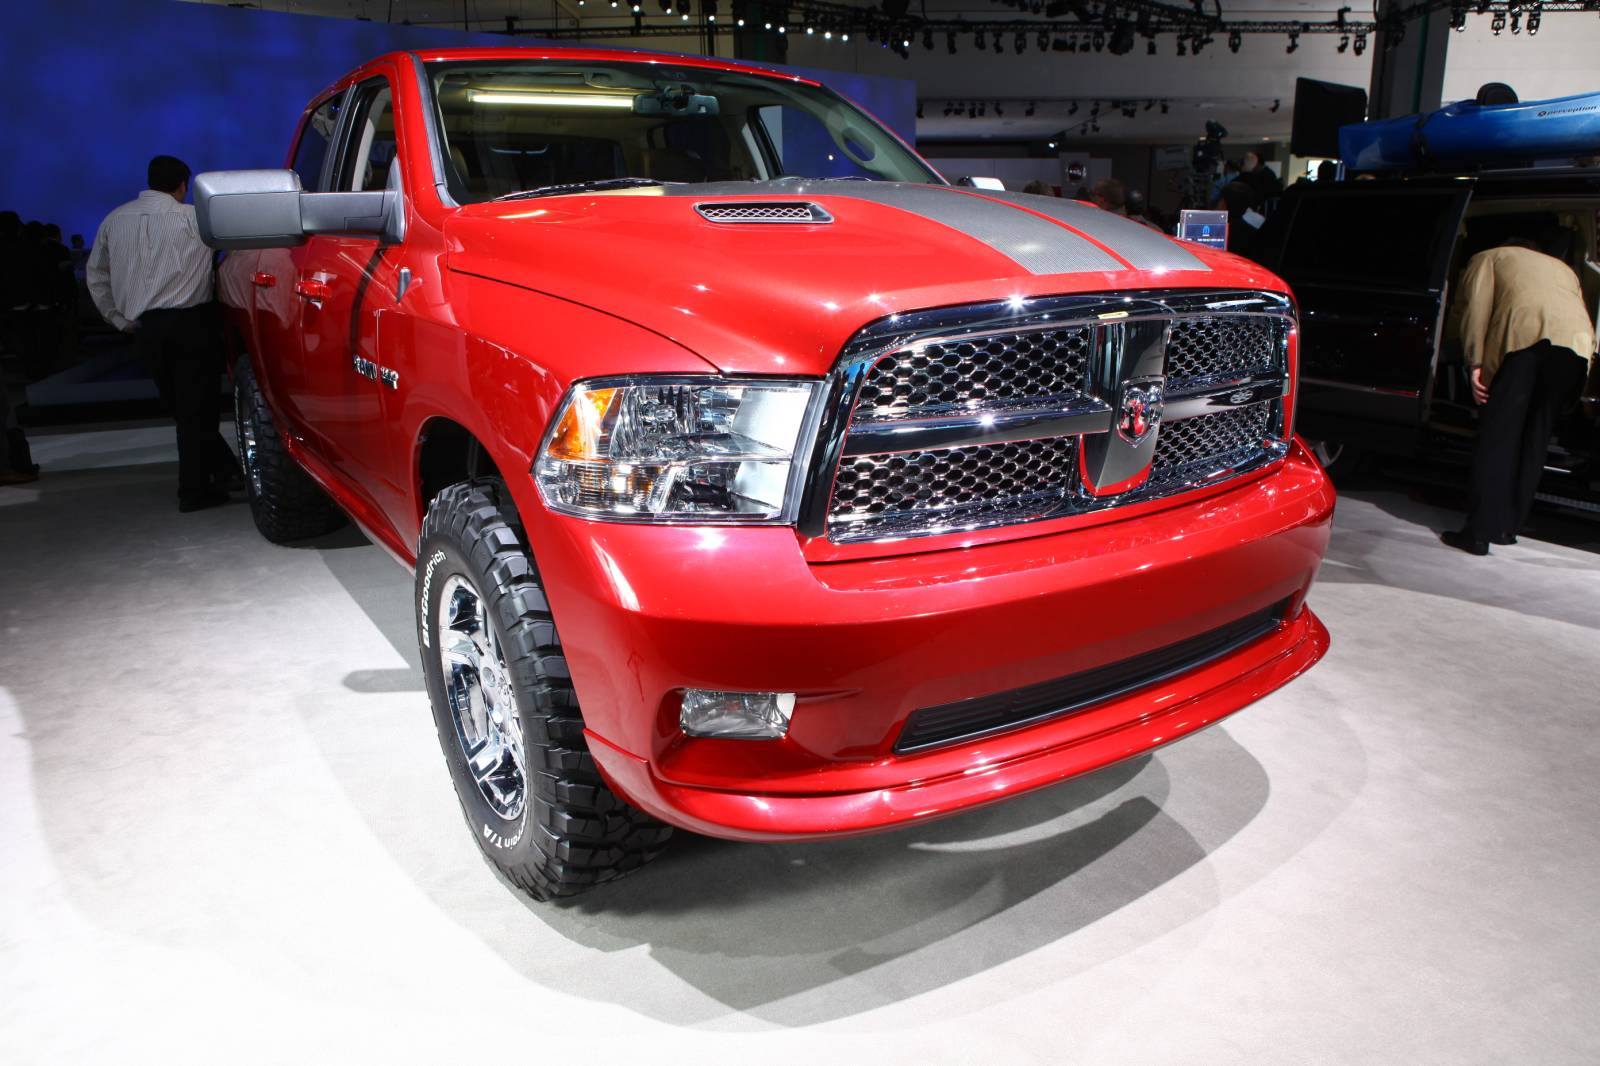 dodge ram 2012 latest cars models. Black Bedroom Furniture Sets. Home Design Ideas